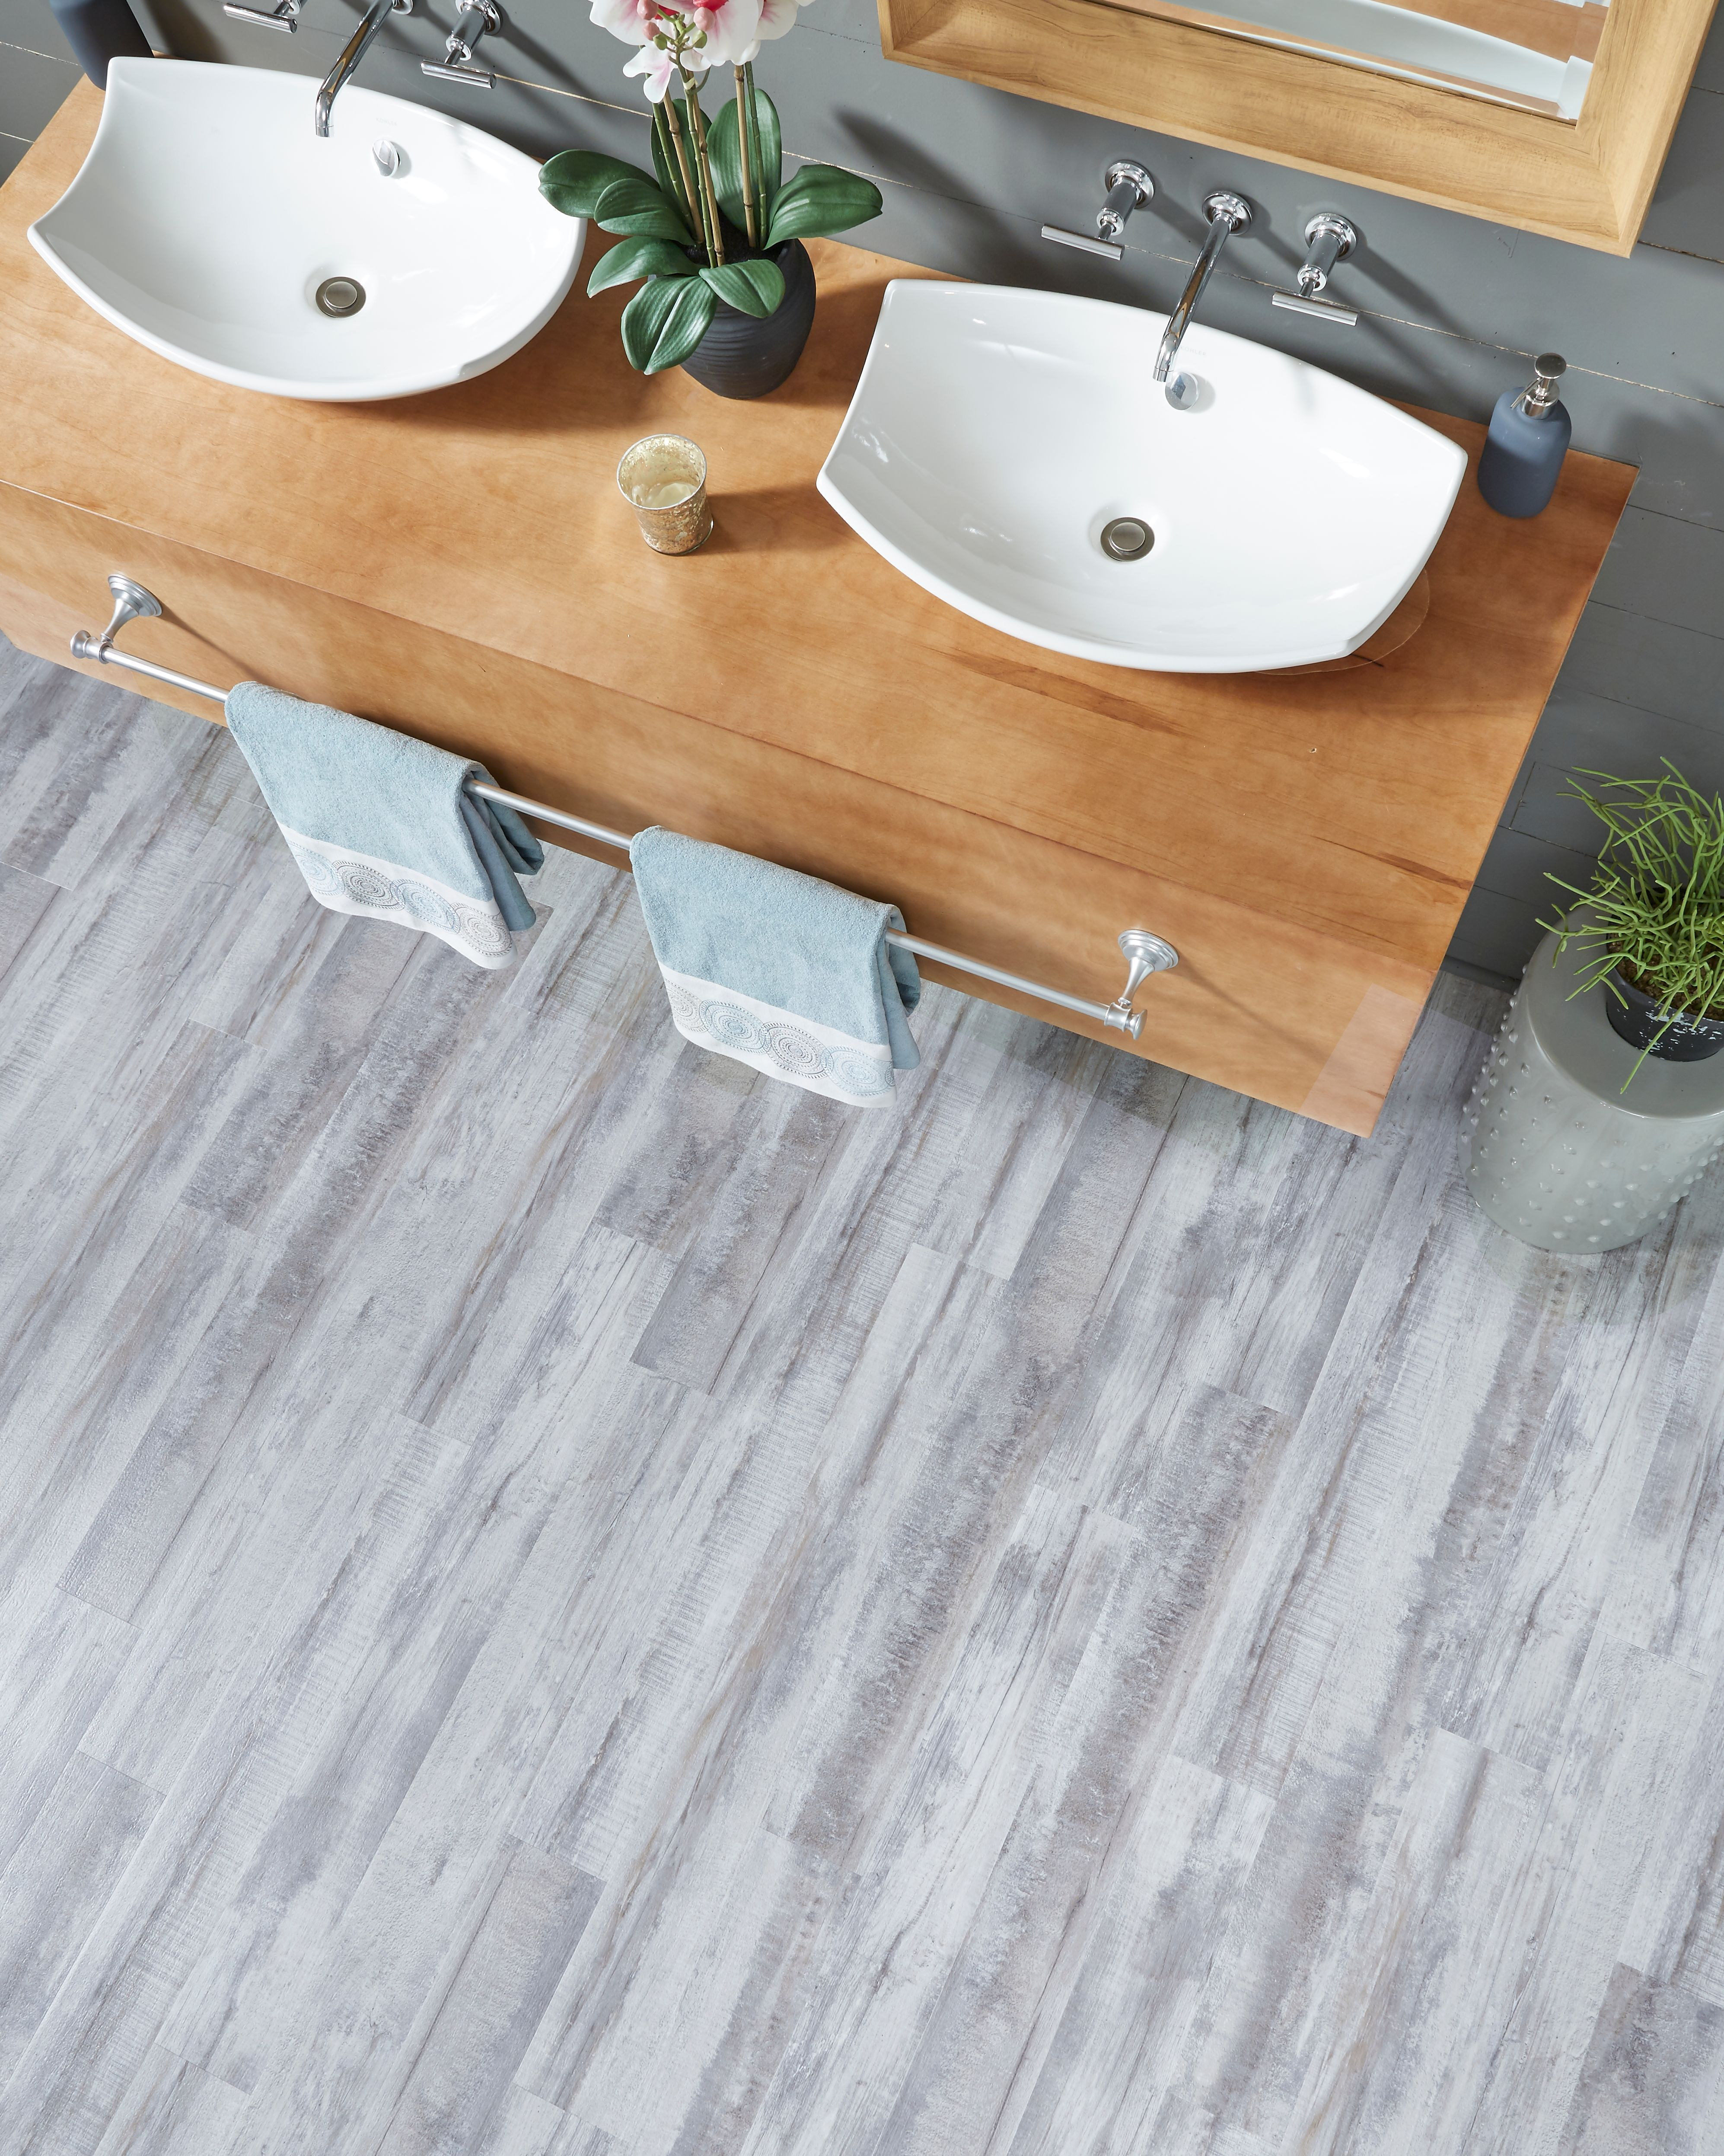 Enjoy The Sophisticated Look Without The Worry With Durable Adura Rigid Tile Shown In This Elegant Bathroo Vinyl Wood Flooring Luxury Vinyl Plank Vinyl Plank